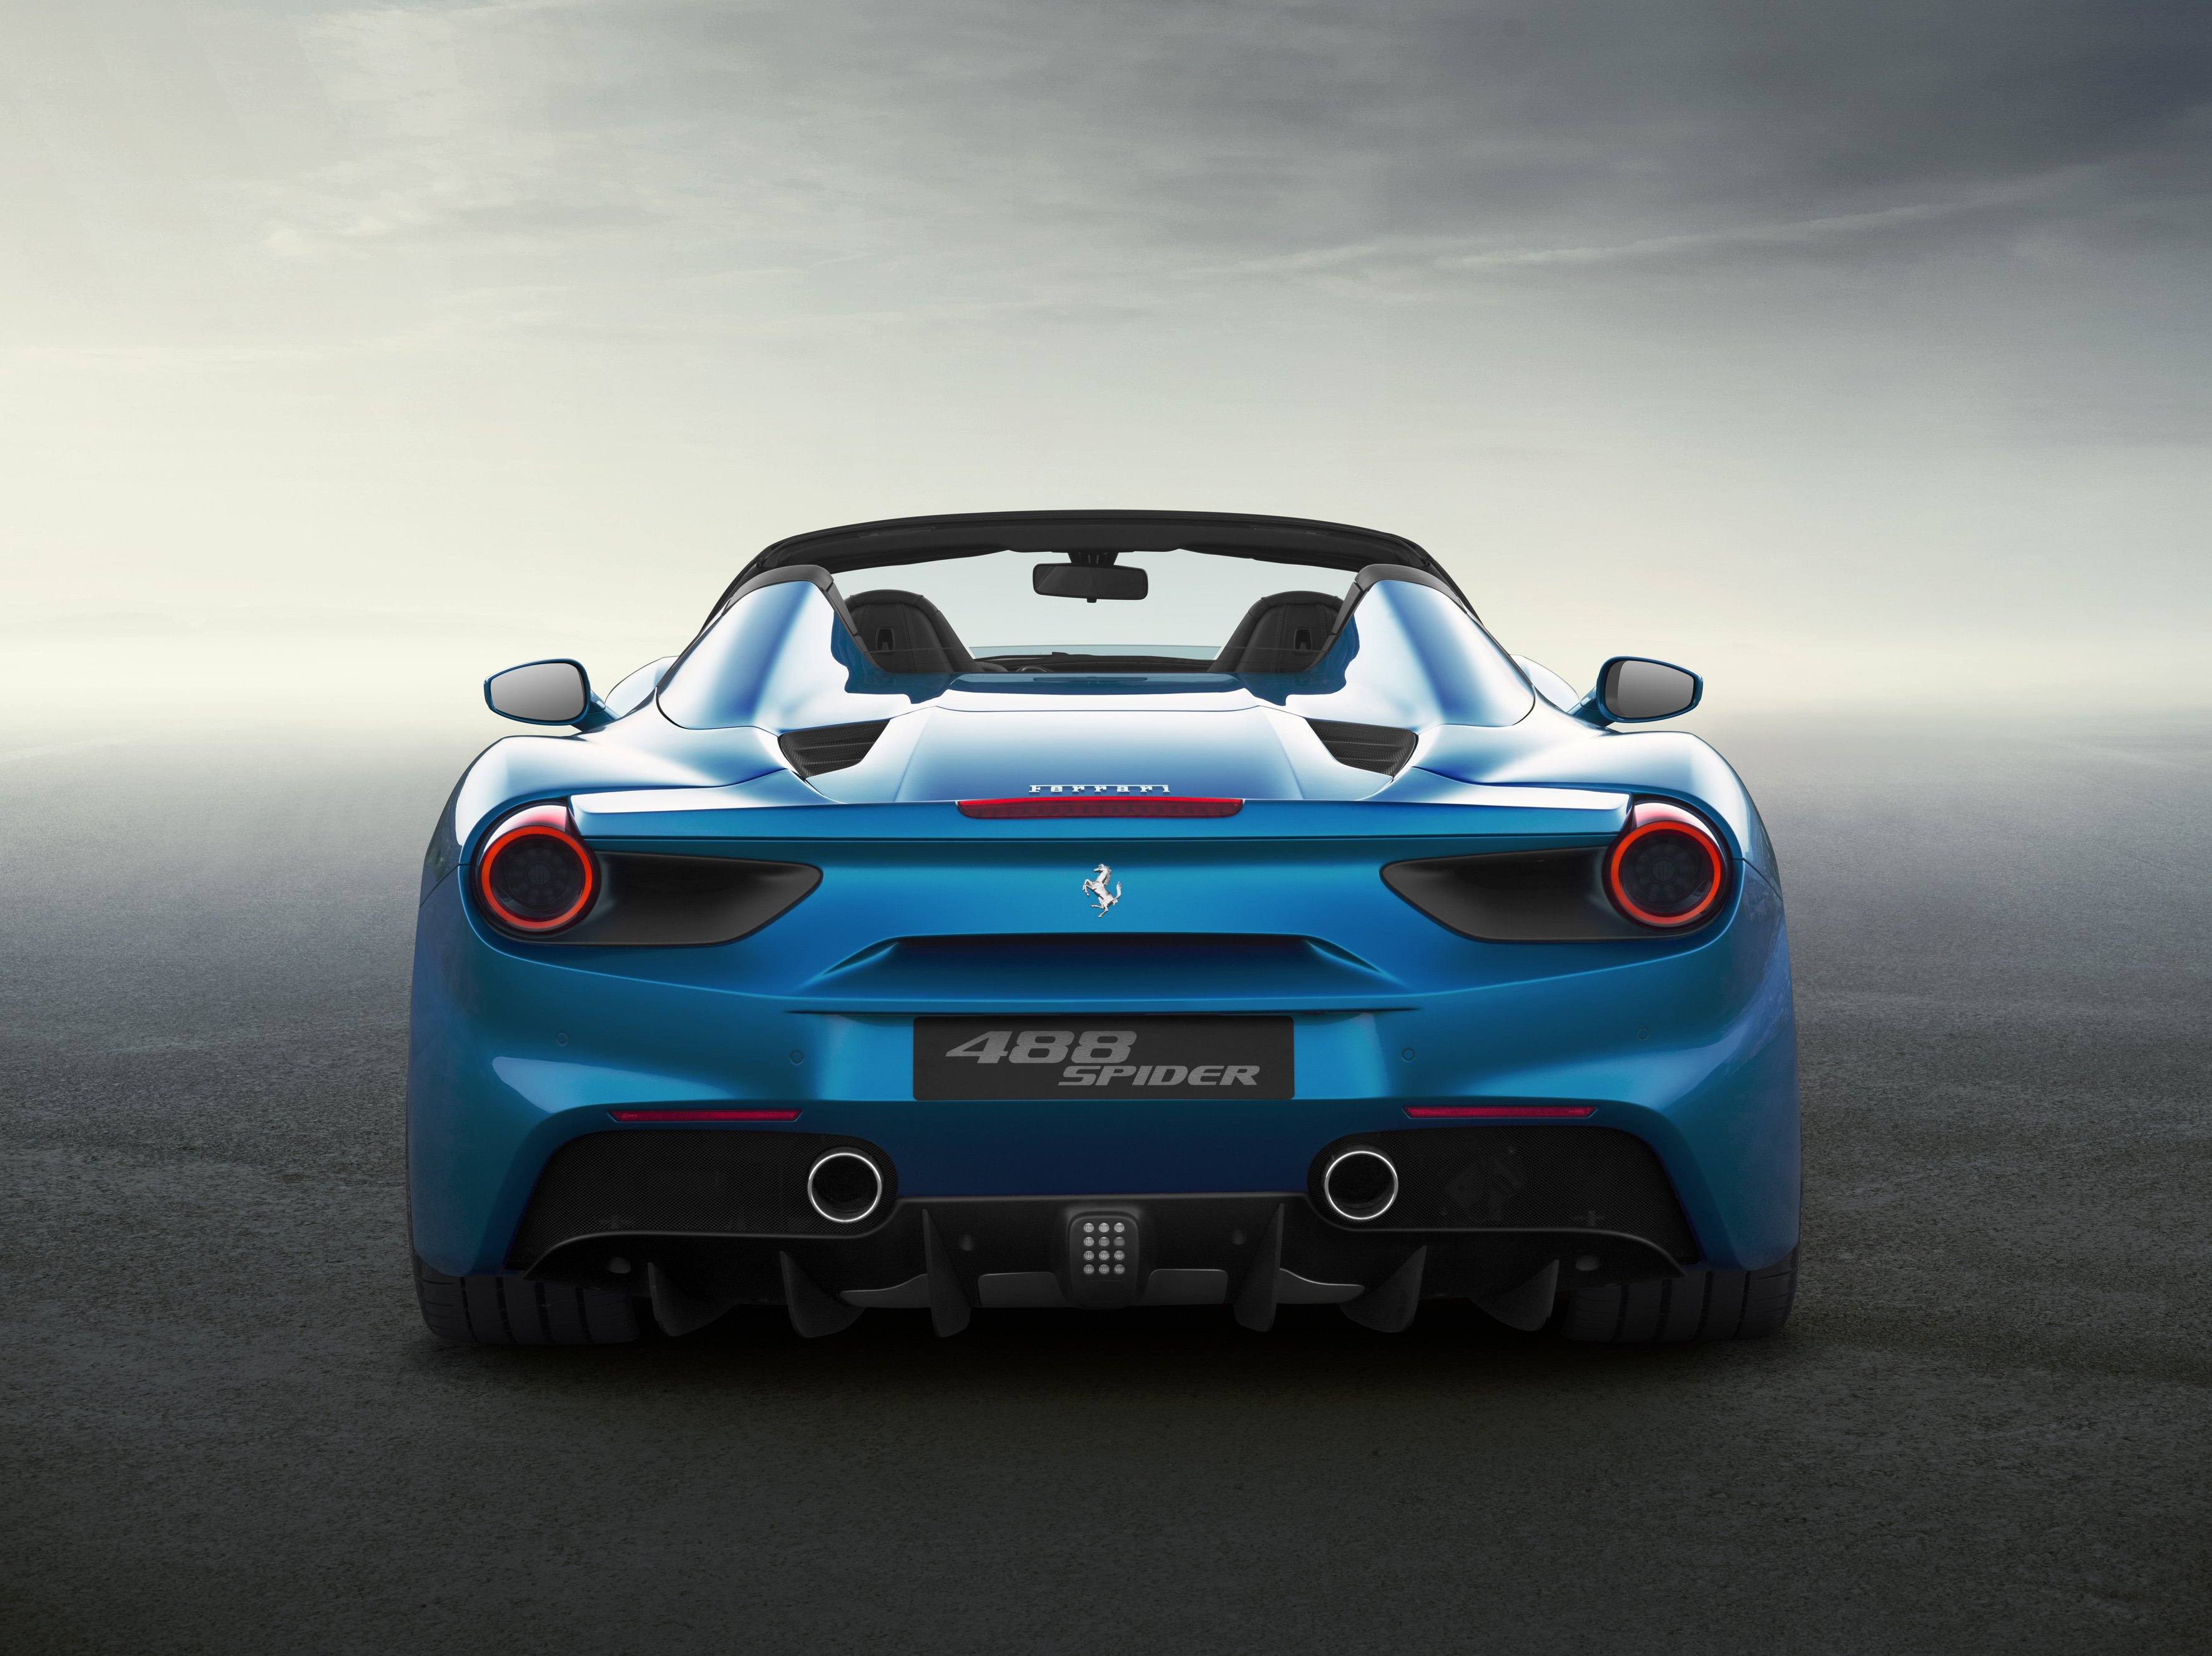 ferrari 488 spider cars 2015 wallpaper 3543x2653 765690 wallpaperup - Ferrari 488 Iphone Wallpaper